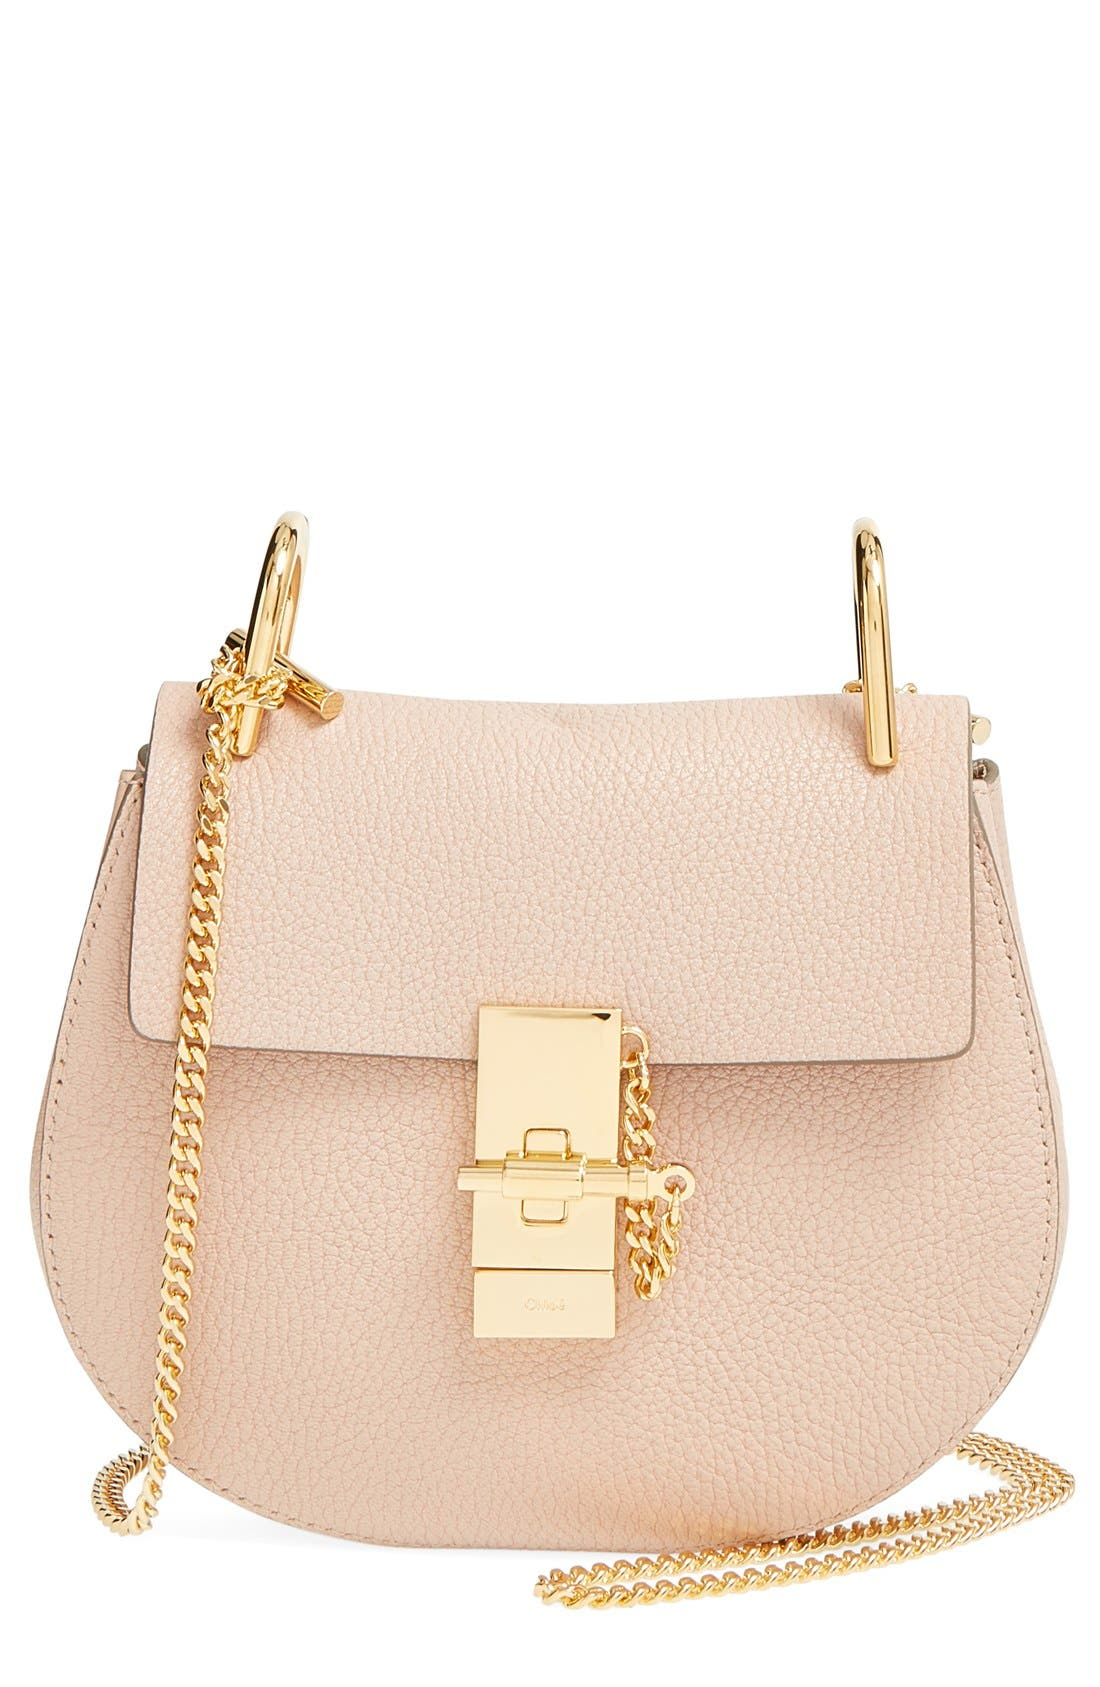 Alternate Image 1 Selected - Chloé 'Mini Drew' Leather Shoulder Bag